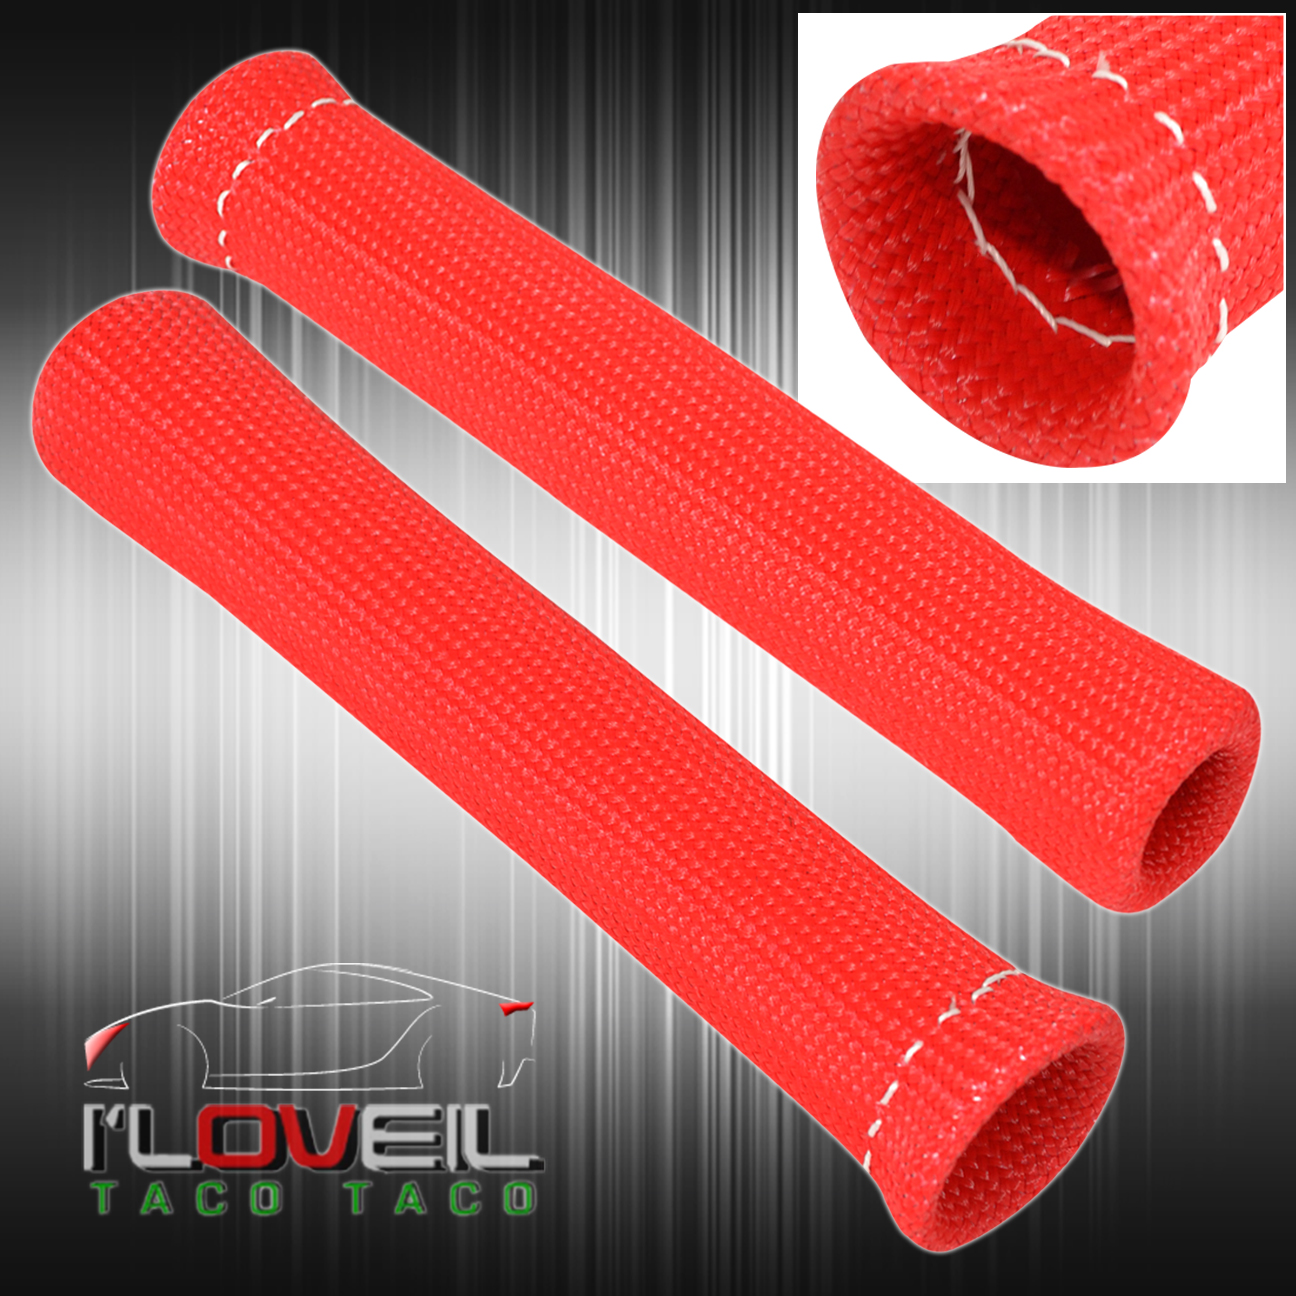 For Audi 1200° Thermal Spark Plug Wire Heat Shield Sleeve V6 V8 Boot Kit Red